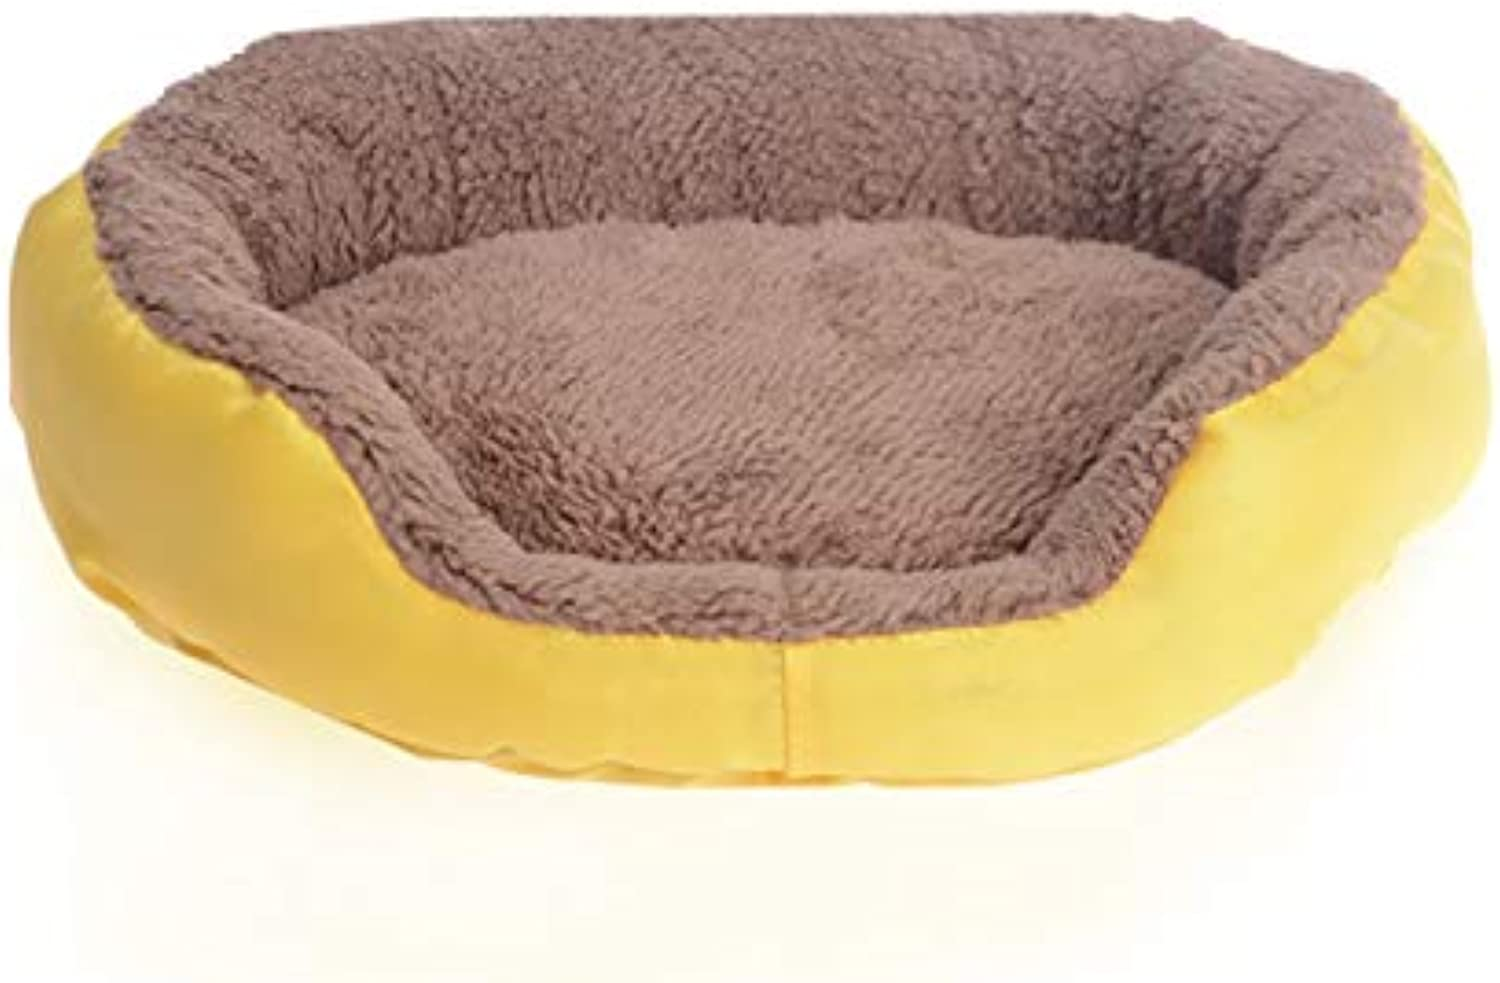 CHONGWUCX Candy colord Round Pet Pocket Woolen, l